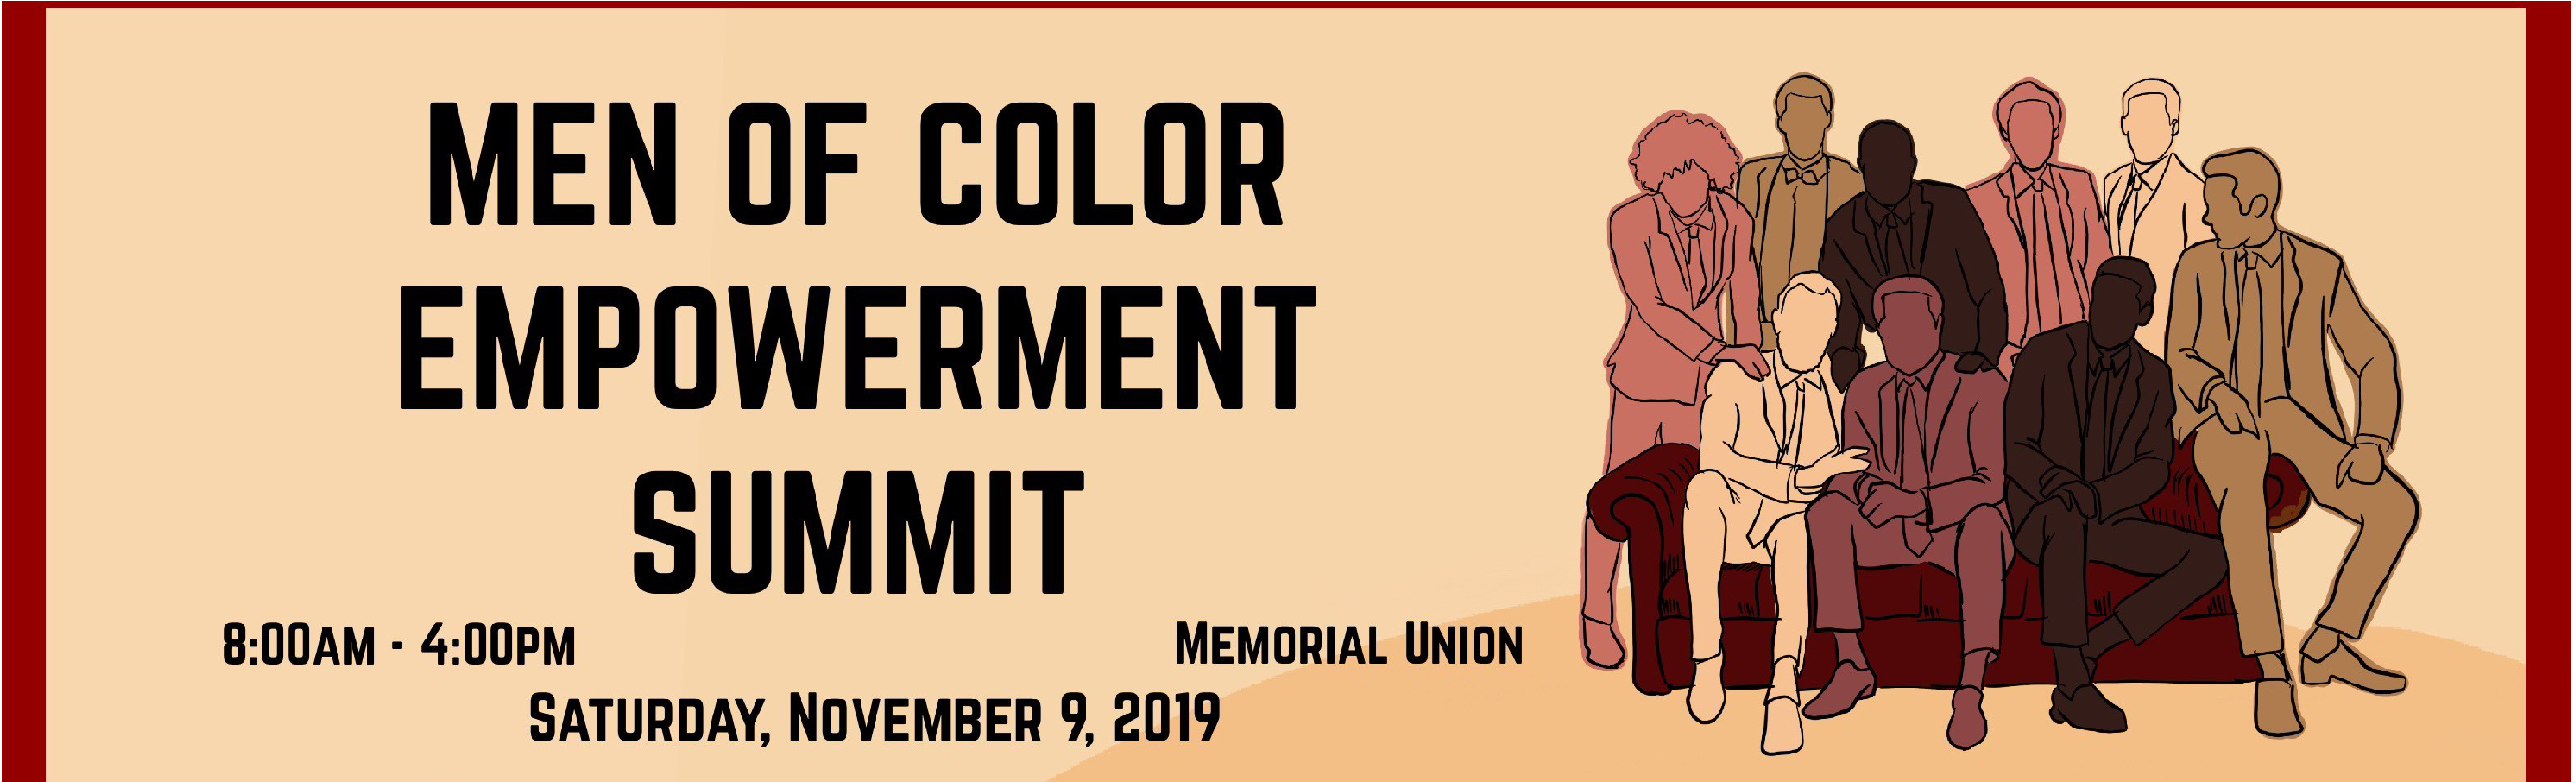 Men of Color Empowerment Symposium Banner. Tan background, sketch of a group of people in suits. (Text) Men of Color Empowerment Summit 8:00am-4pm  Memorial Union  Saturday, November 9, 2019